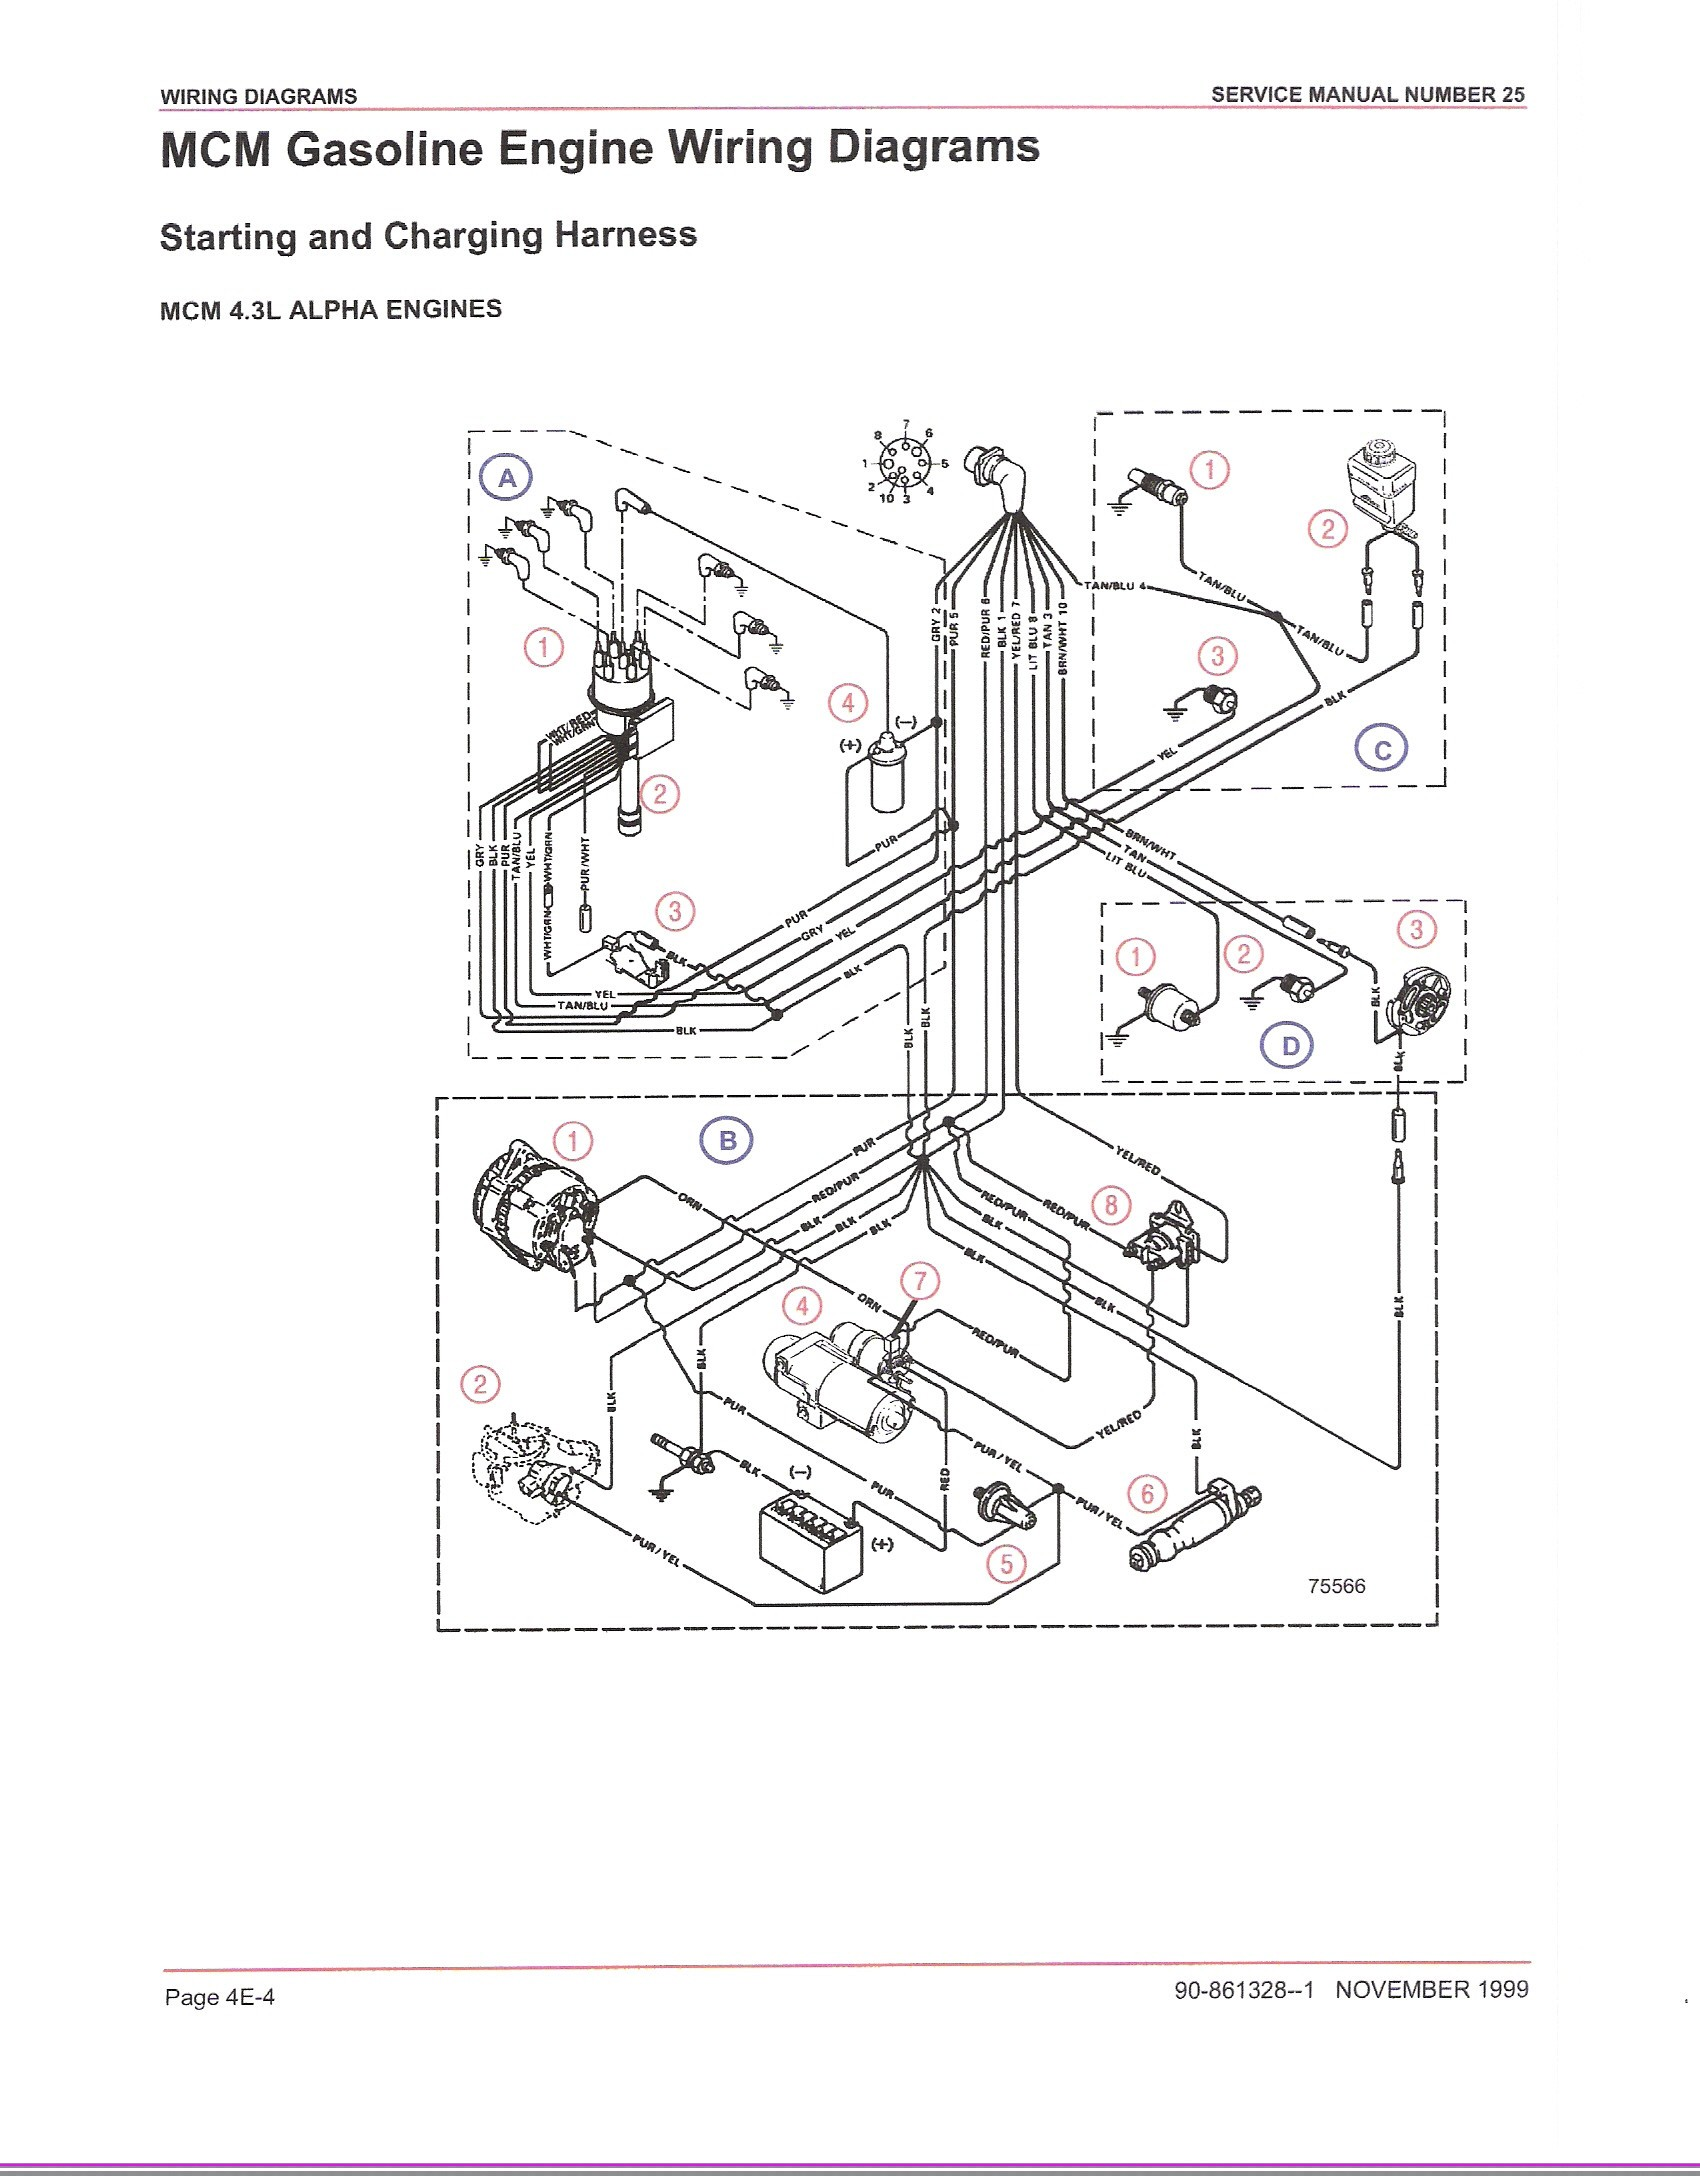 4 3 vortec engine firing order diagram 4 3l coil wiring wire center e280a2 of 4 3 vortec engine firing order diagram 4 3 vortec wiring diagram coil vehicle wiring diagrams